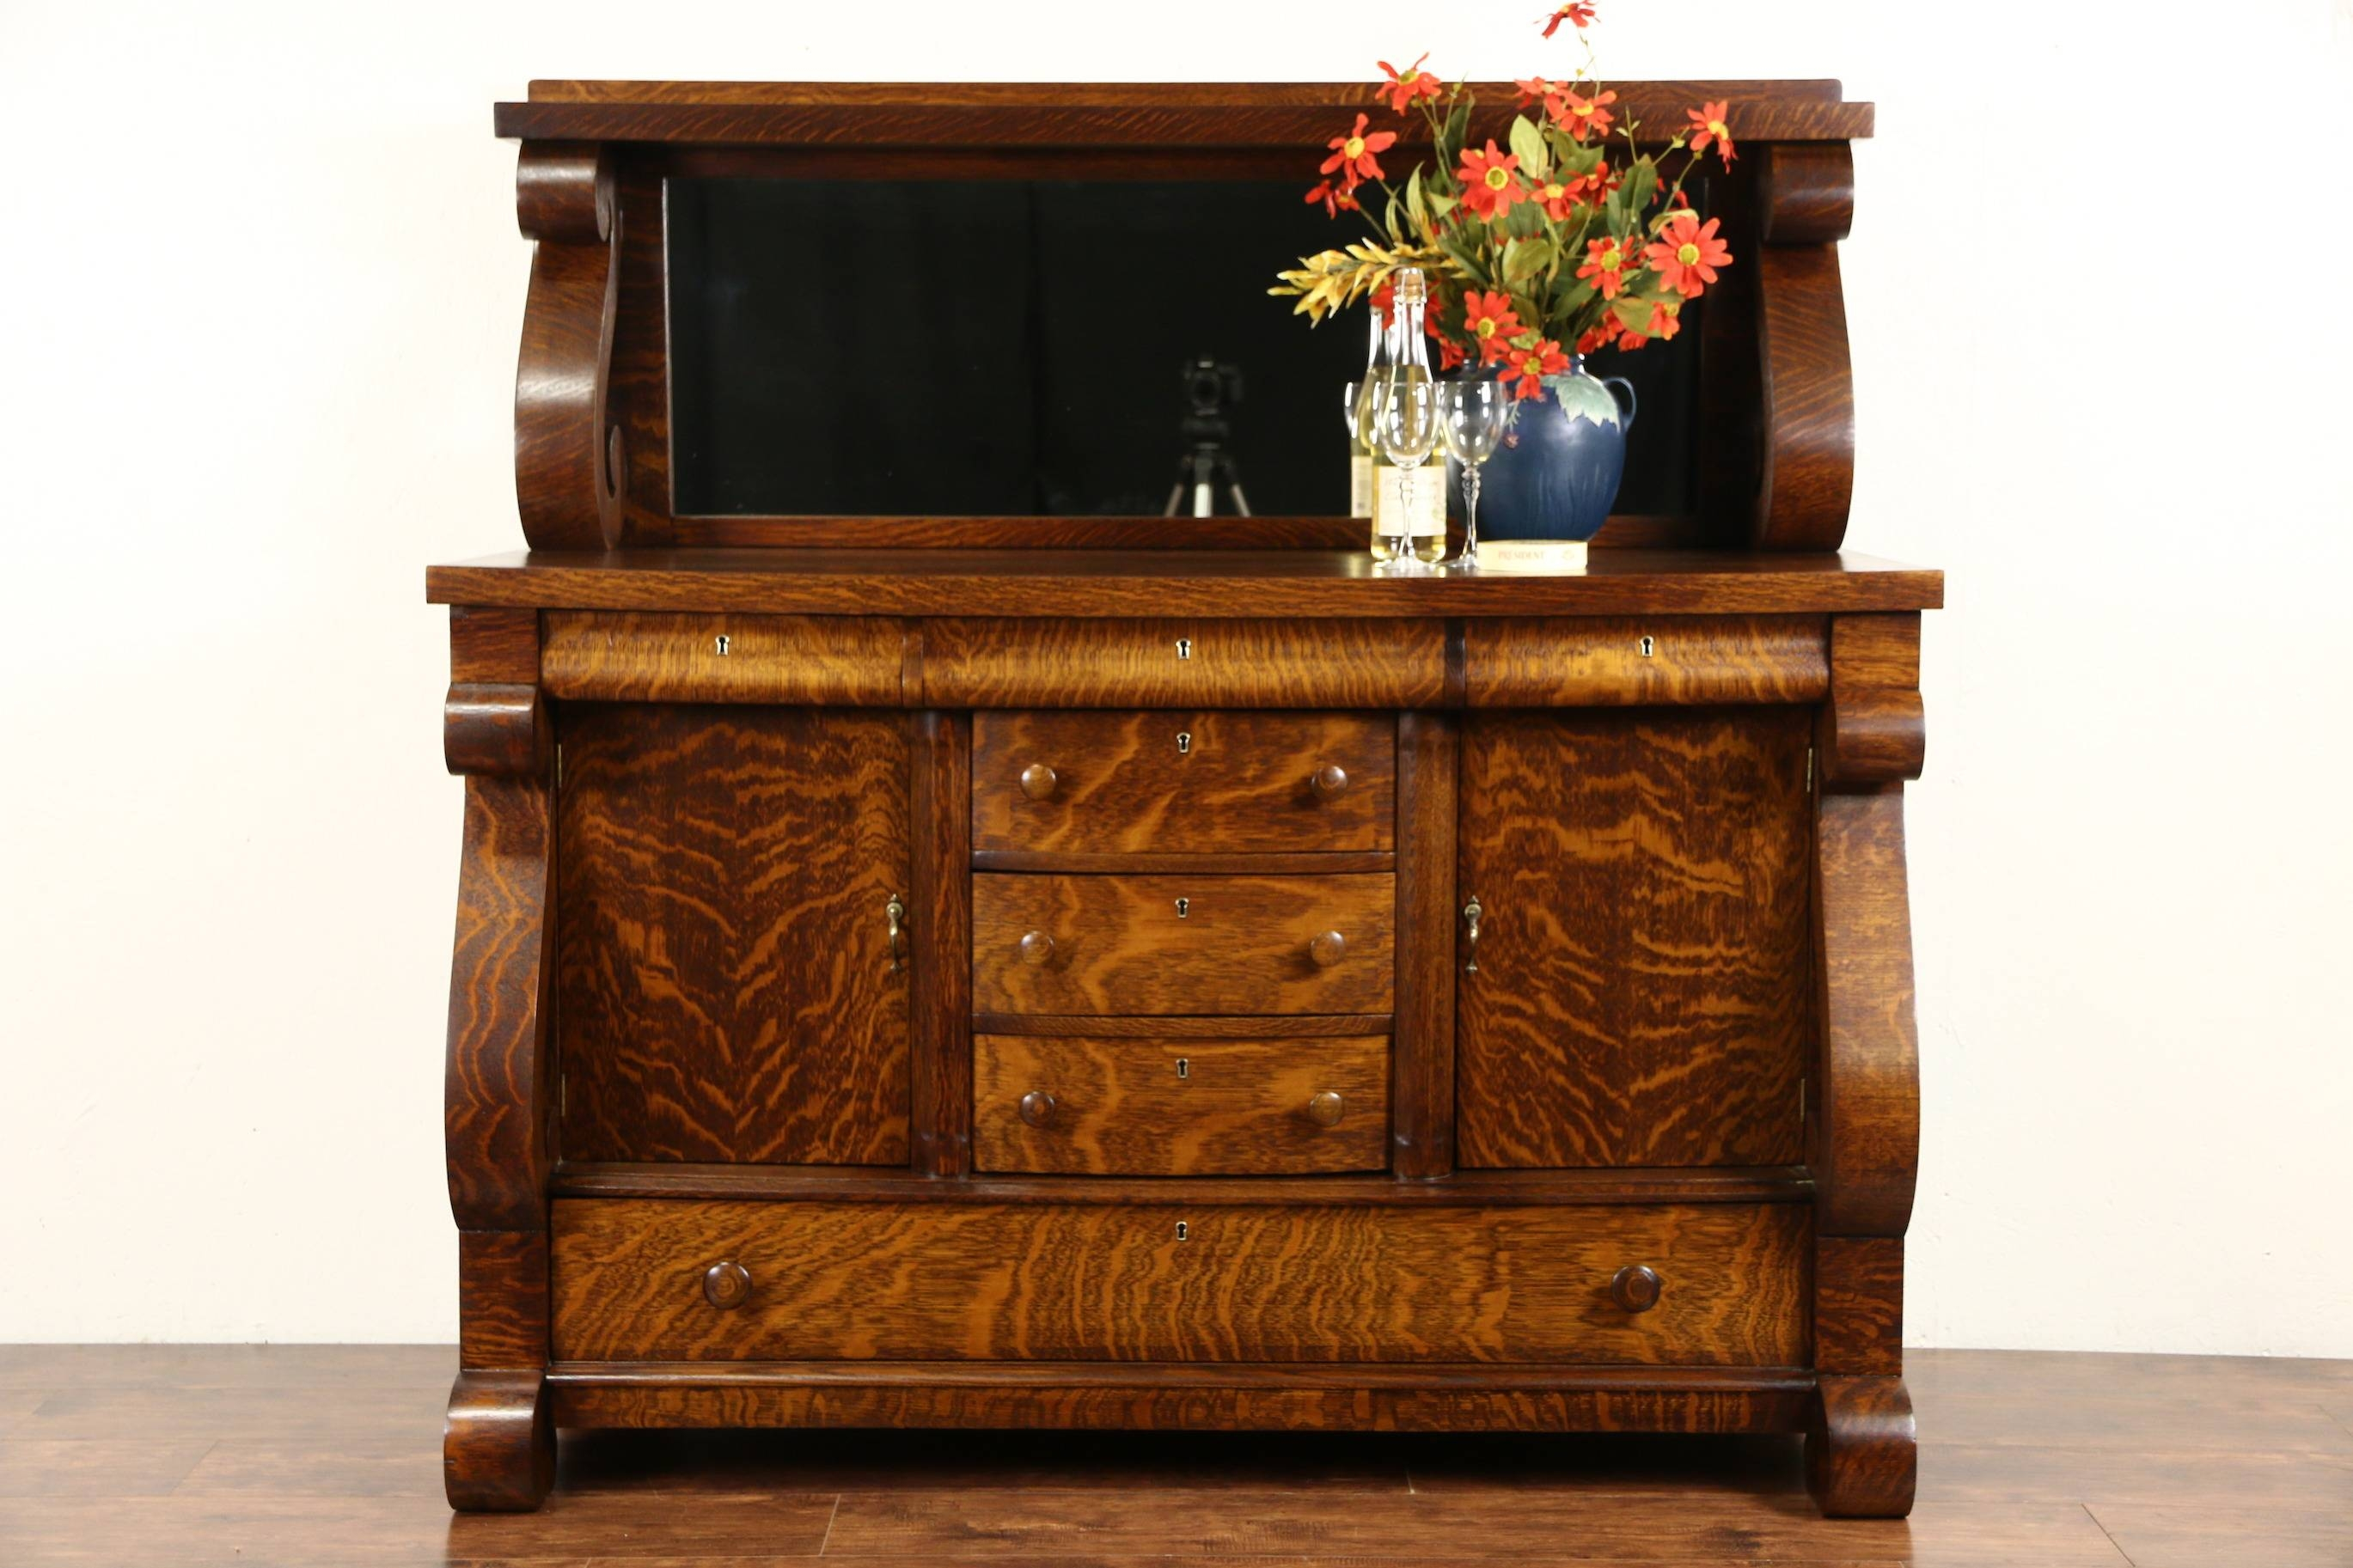 Sold – Oak 1910 Antique Empire Sideboard, Server Or Buffet, Mirror Throughout Recent Antique Sideboards With Mirror (#14 of 15)